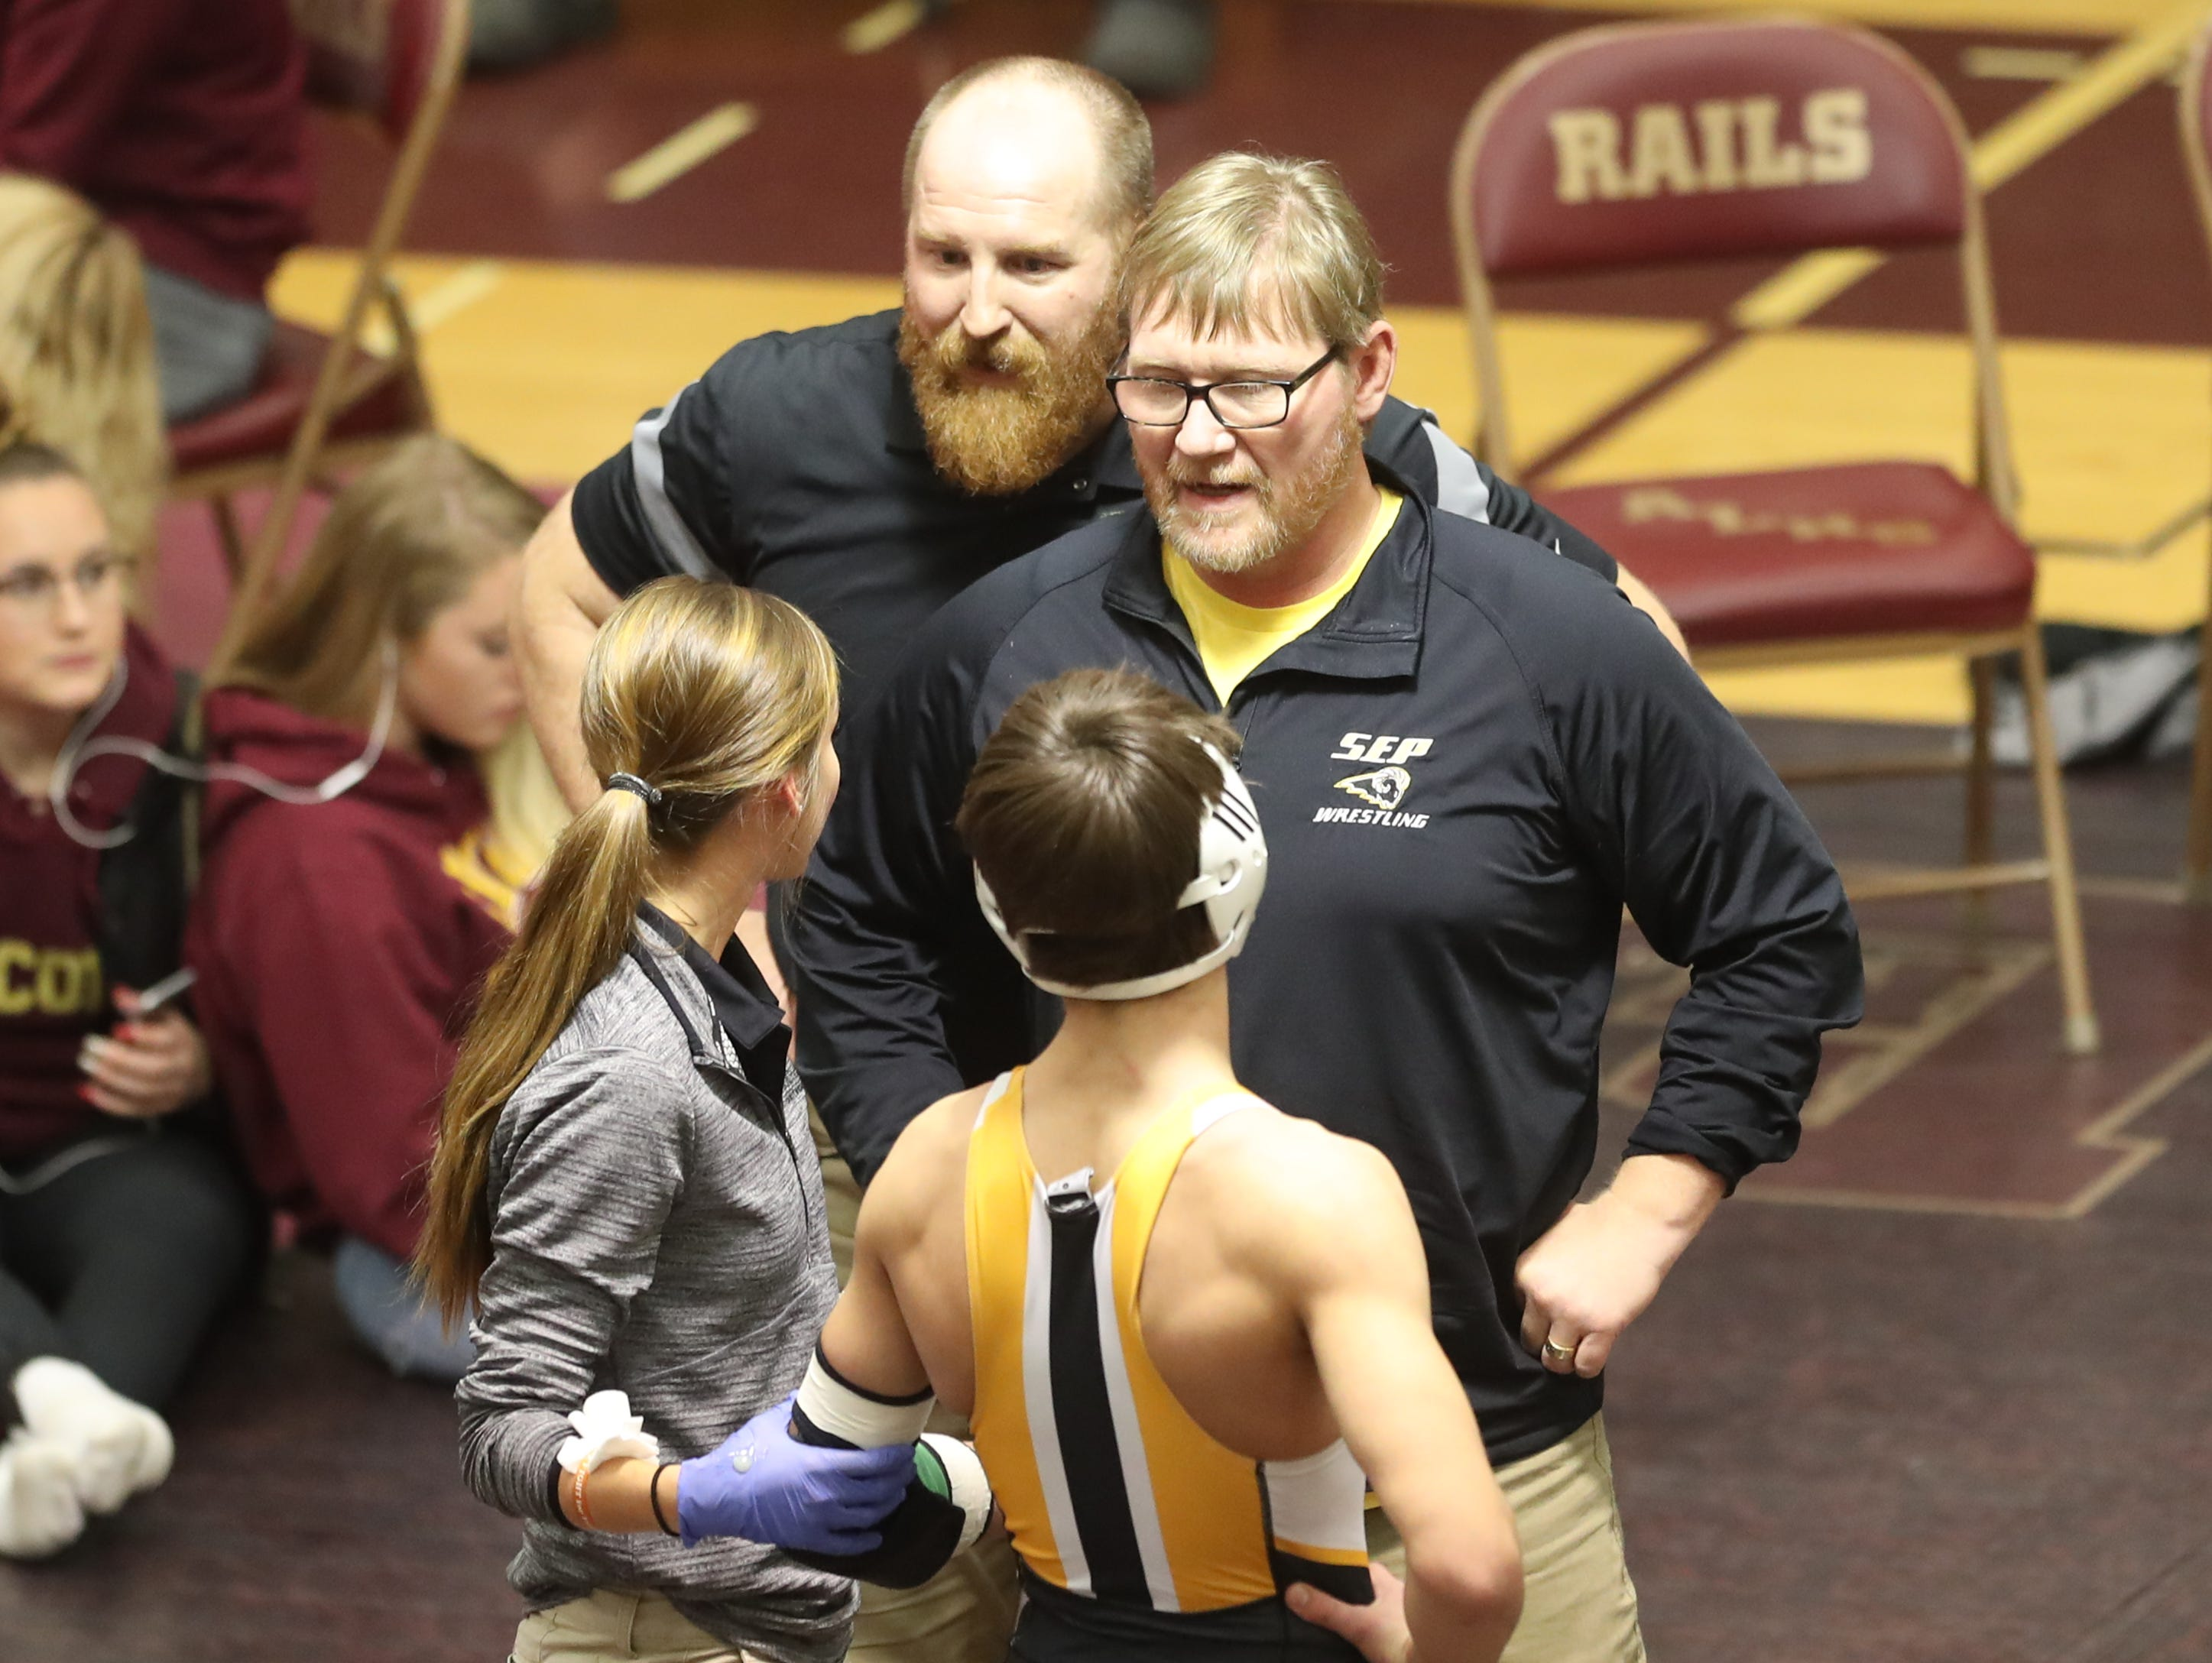 Dec 4, 2018; Des Moines, IA  USA; Joel Jesuroga (Southeast Polk) talks with the trainer and head coach Jason Christenson  during his match with DM Lincoln at Lincoln High School. The Rams beat the Railsplitters 66-6.